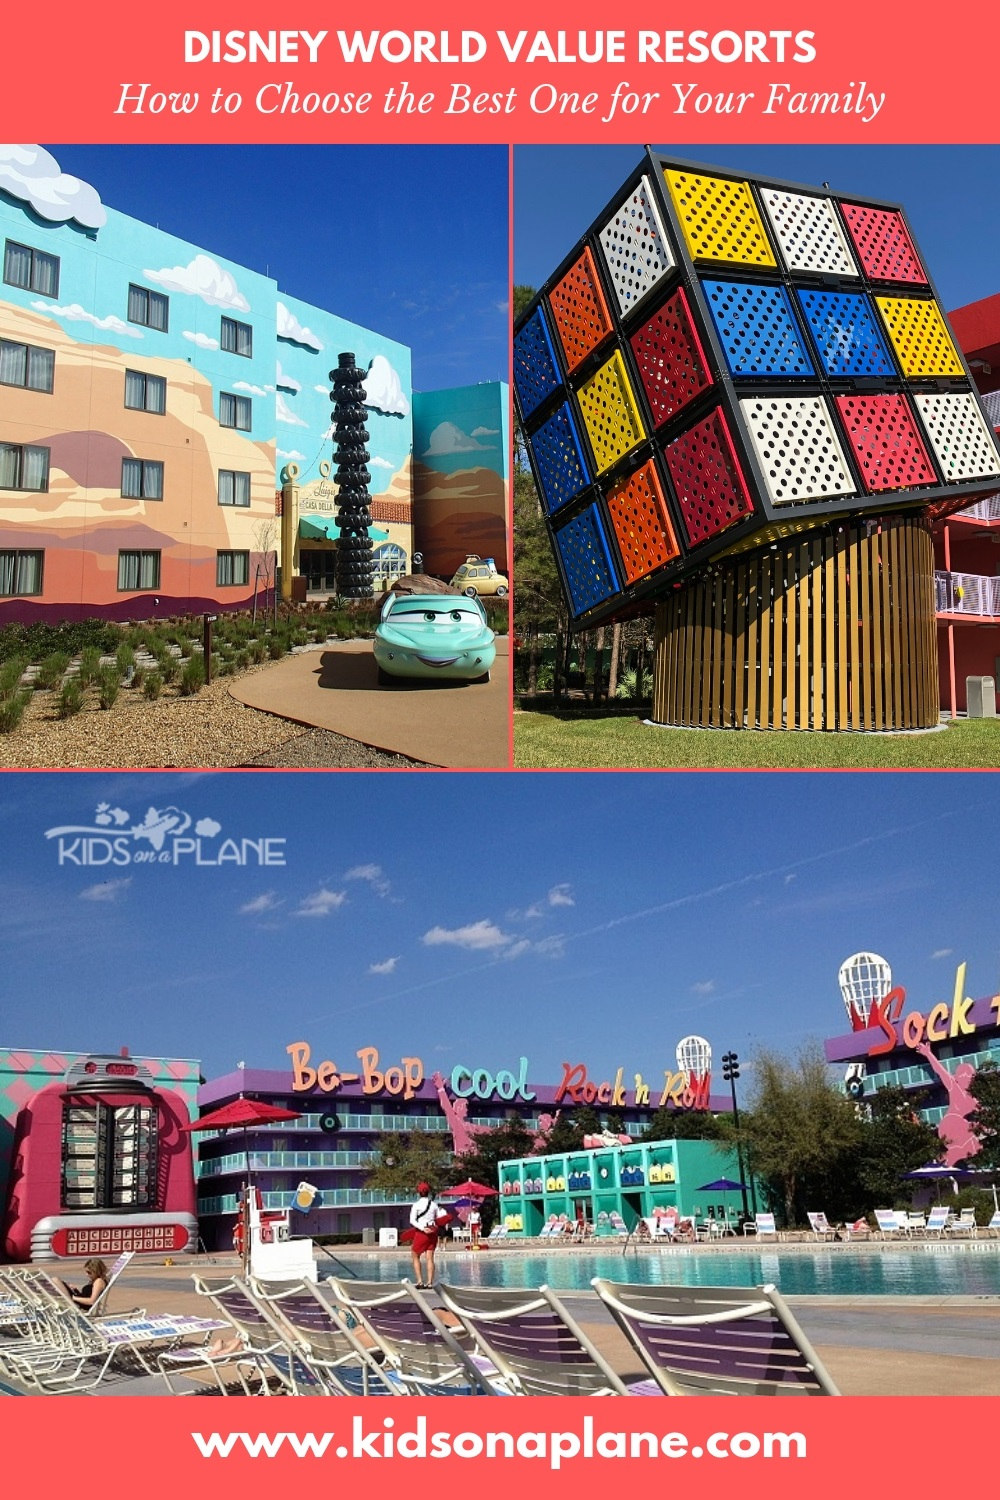 All About Disney VALUE Resort Hotels - How to Choose a Disney World Resort Hotel